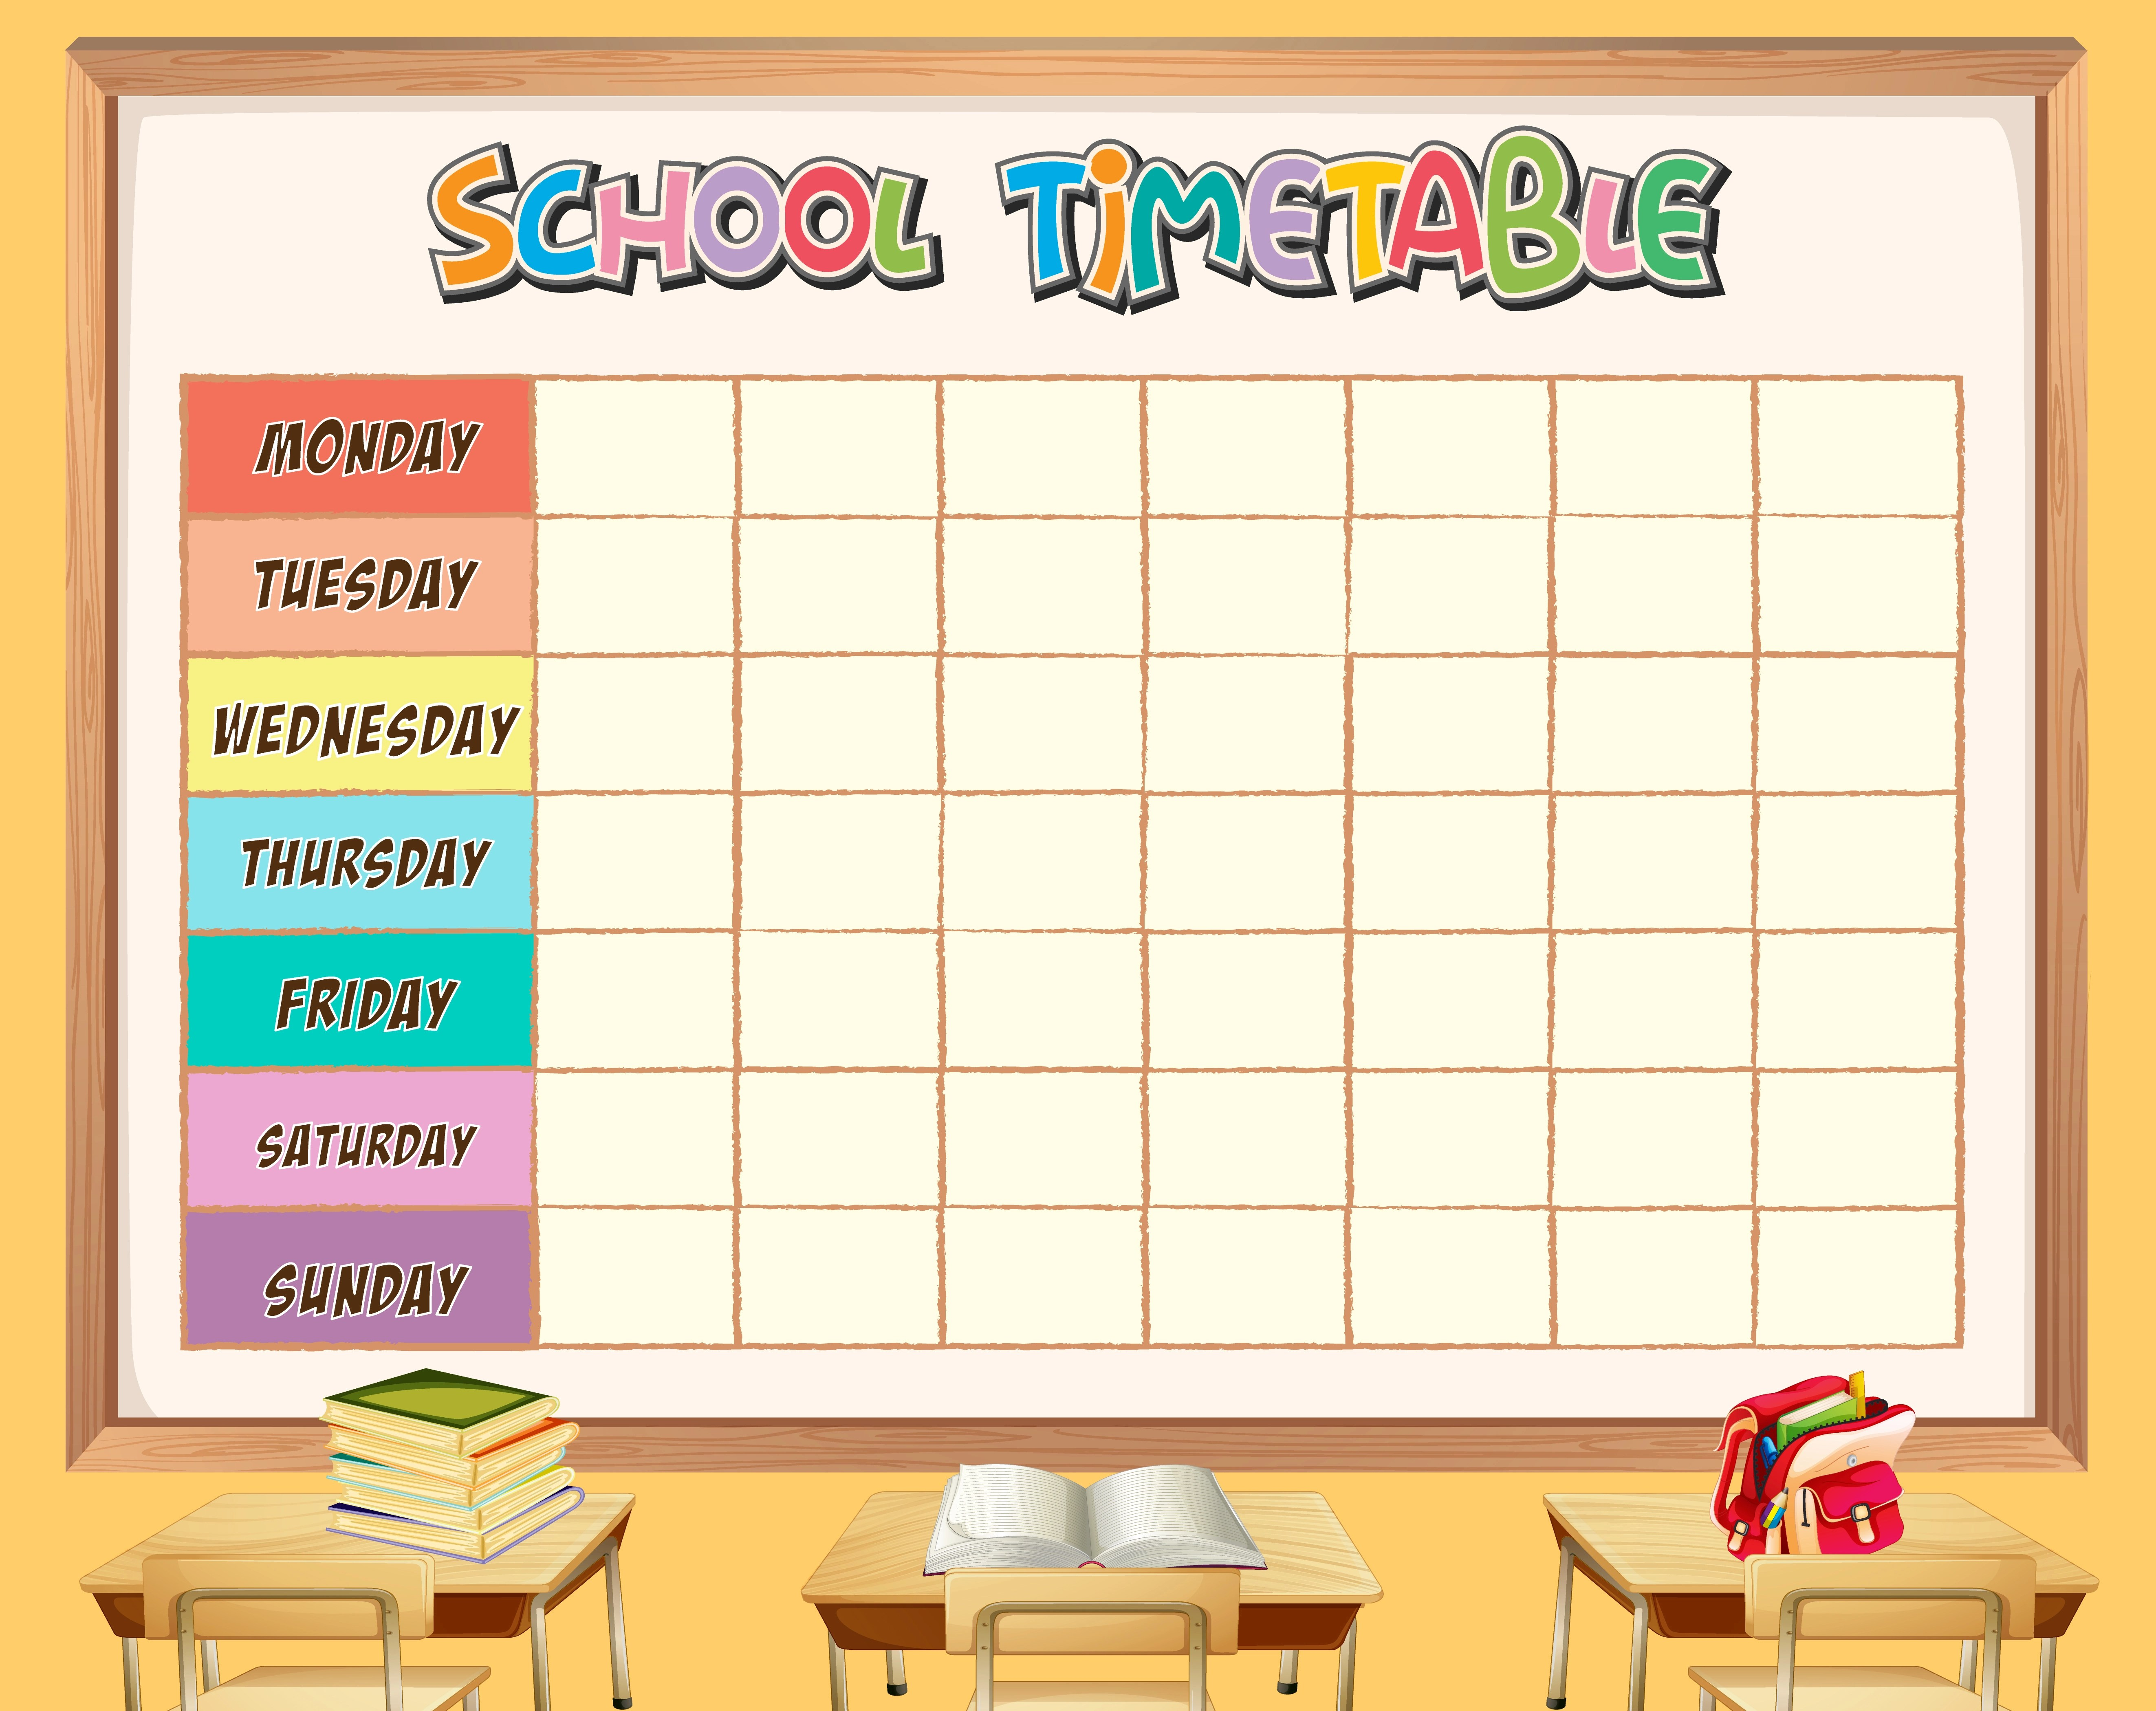 School Timetable Template With Classroom Theme